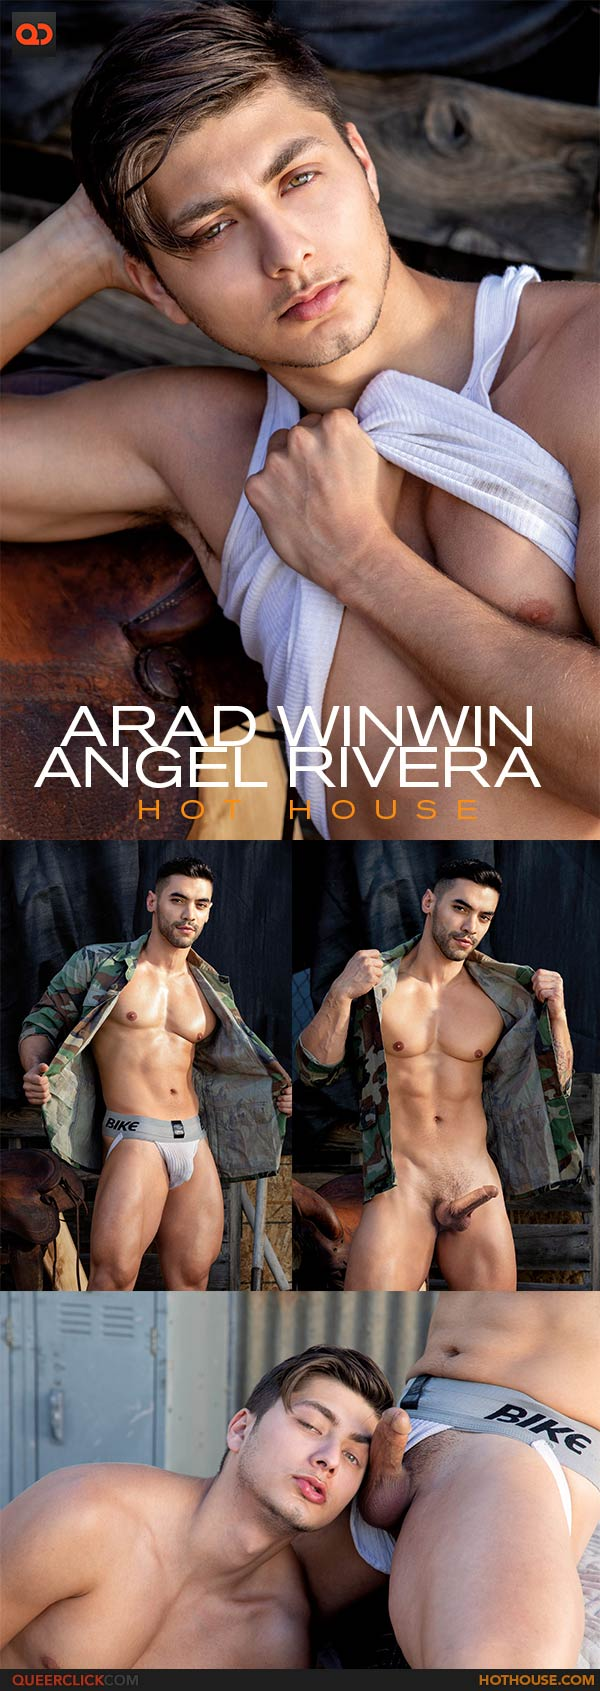 FalconStudios/HotHouse: Arad Winwin and Angel Rivera